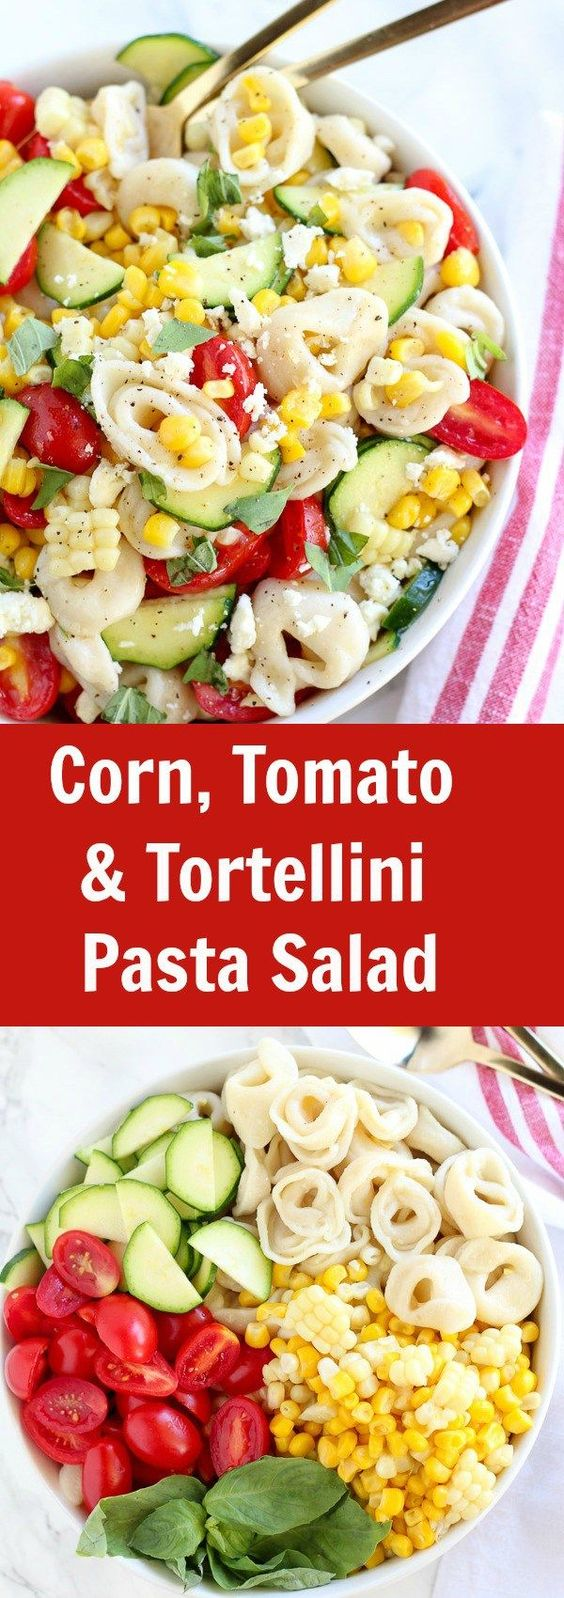 Tortellini pasta salads, Tortellini pasta and Tortellini on Pinterest